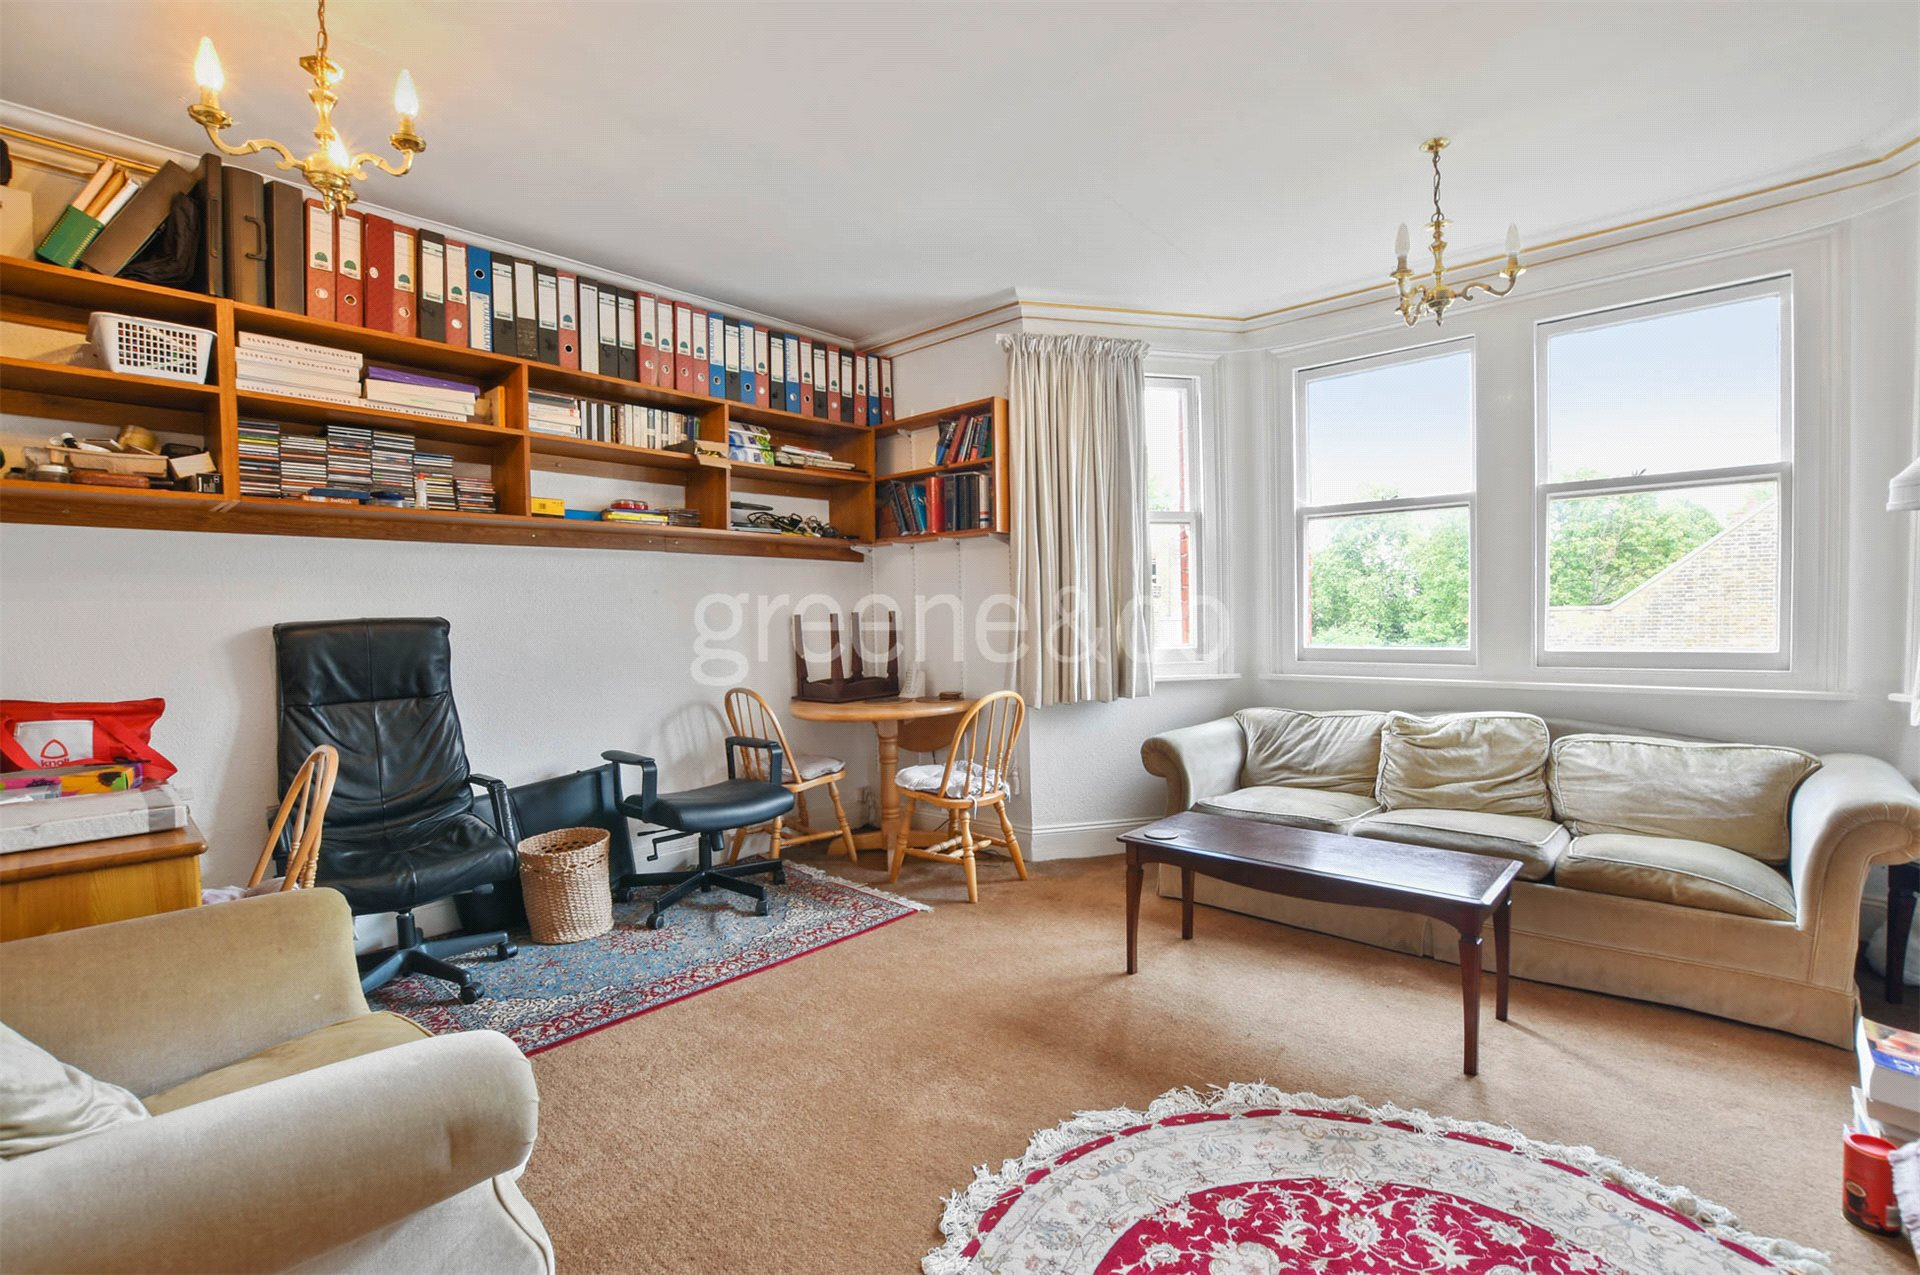 1 Bedroom Flat for sale in Alexandra House, St. Marys Terrace, London, W2